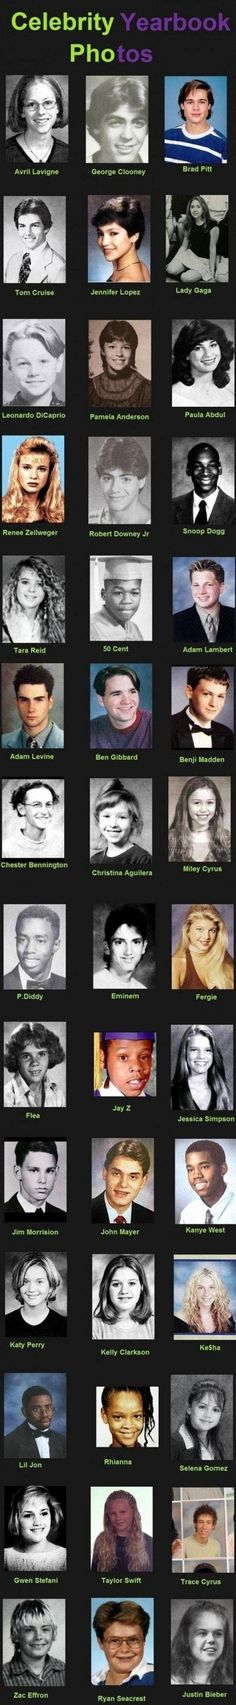 Celebrity Yearbook Photos-that is NOT lil jon!! as for bieber, who knows! the rest- legit